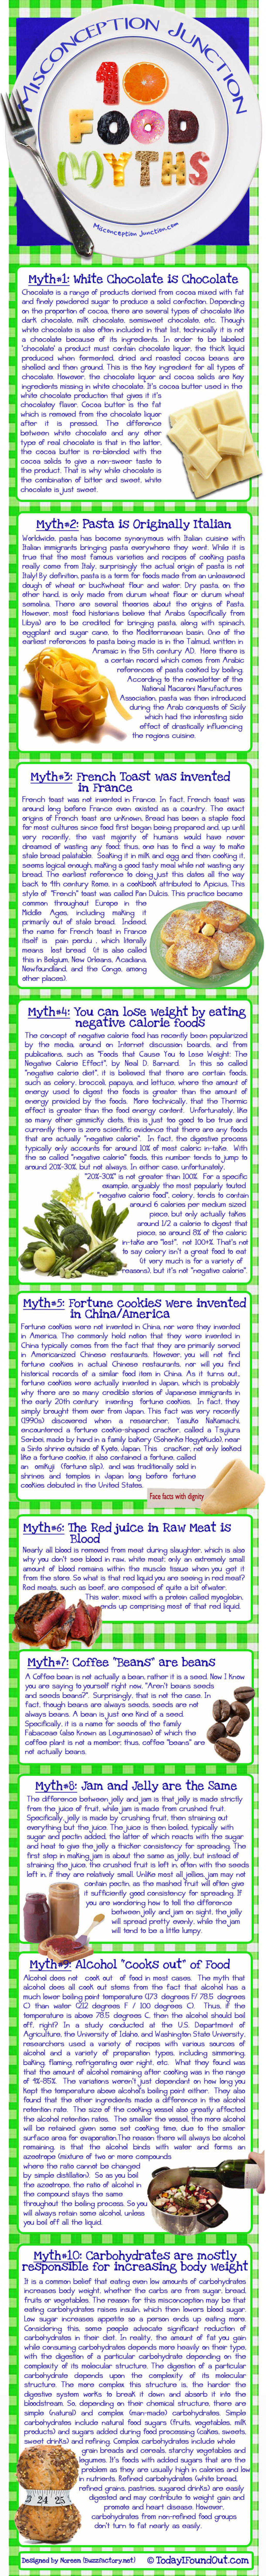 Misconception Junction 10 Food Myths Infographic